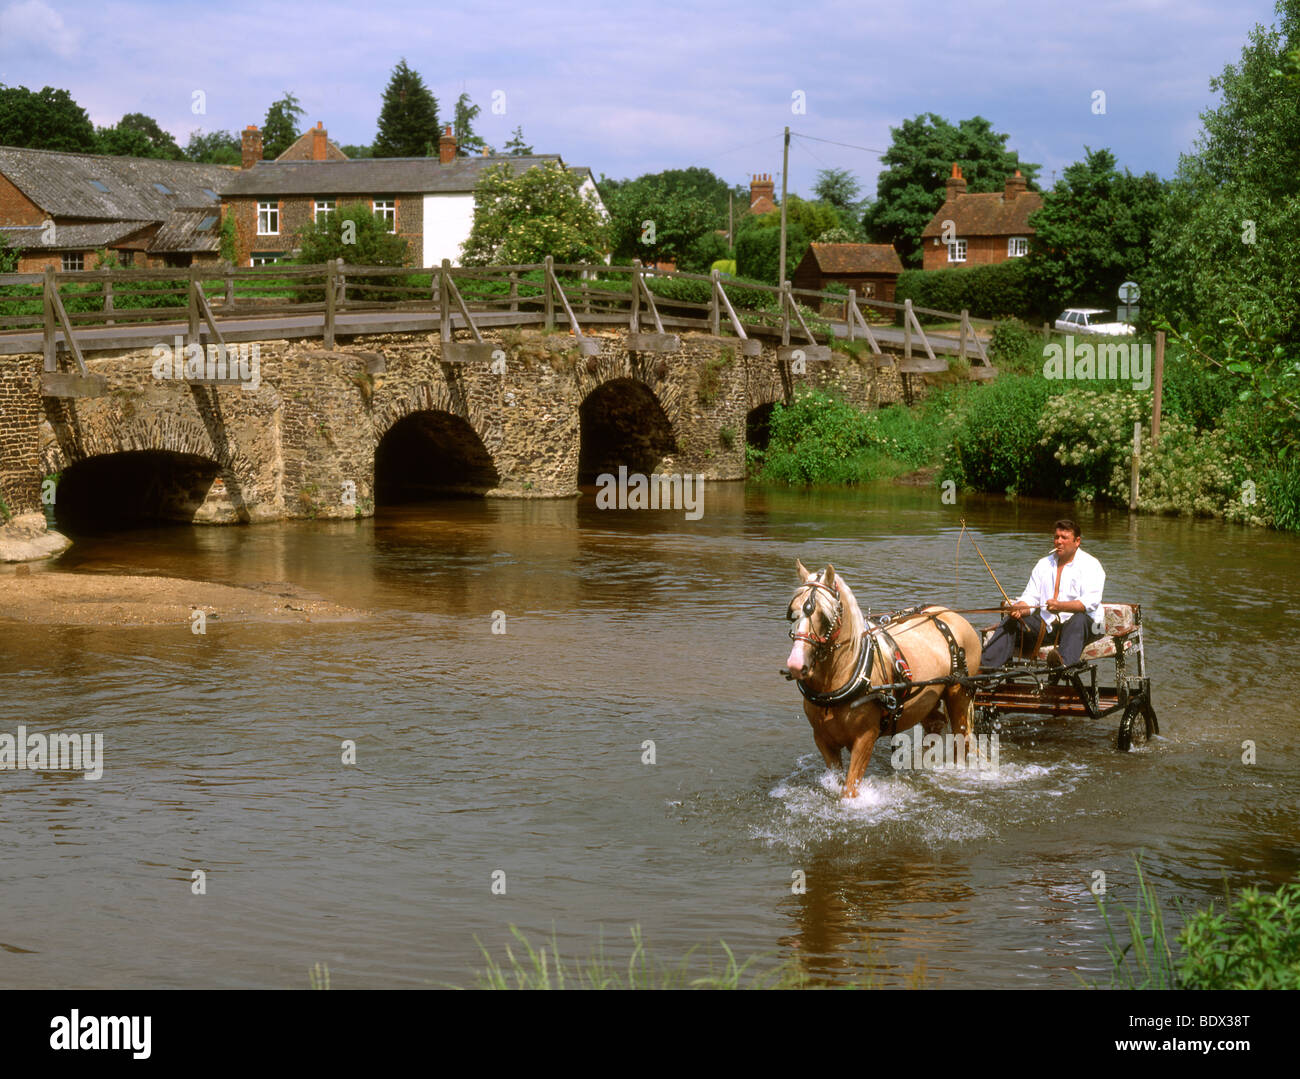 England Surrey Tilford Old bridge with horse & cart crossing river - Stock Image